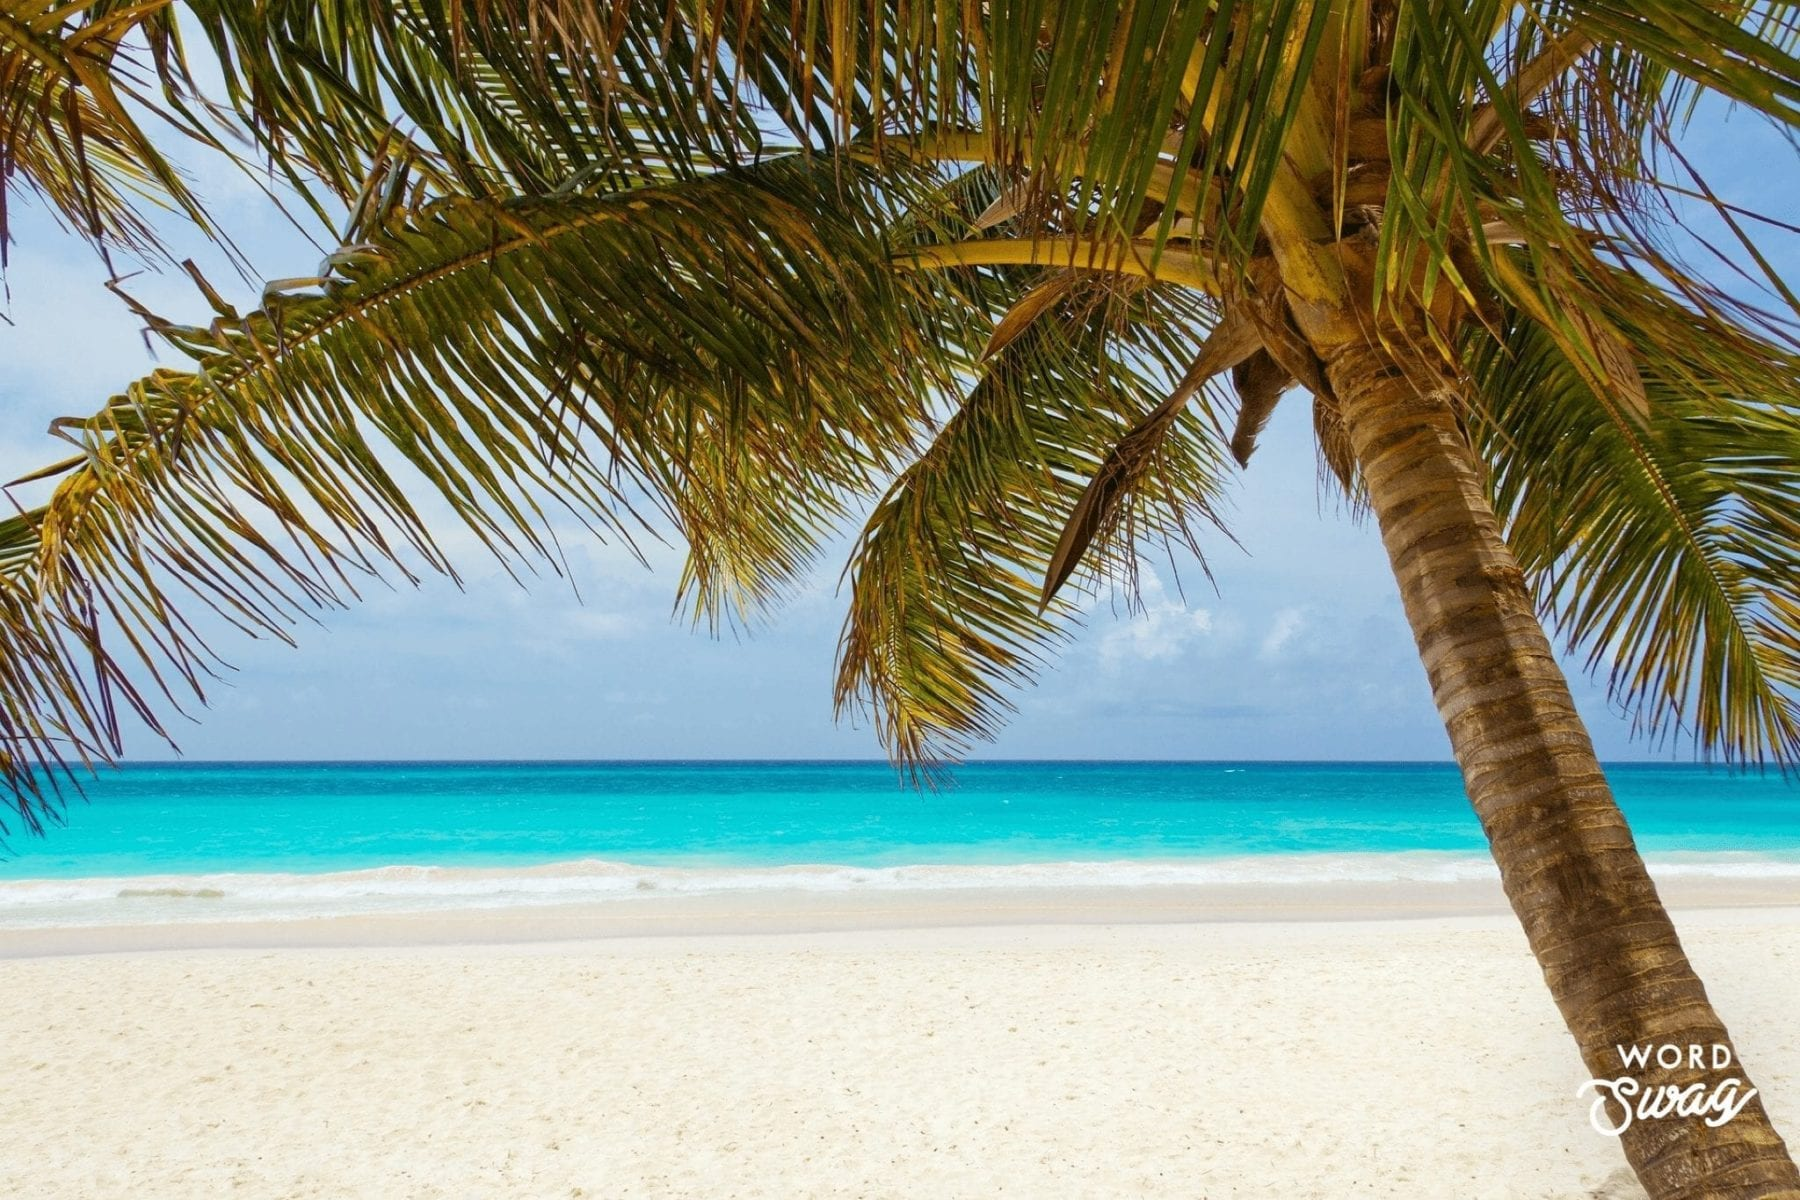 Plan a Beach Vacation at the Best Beaches in the World